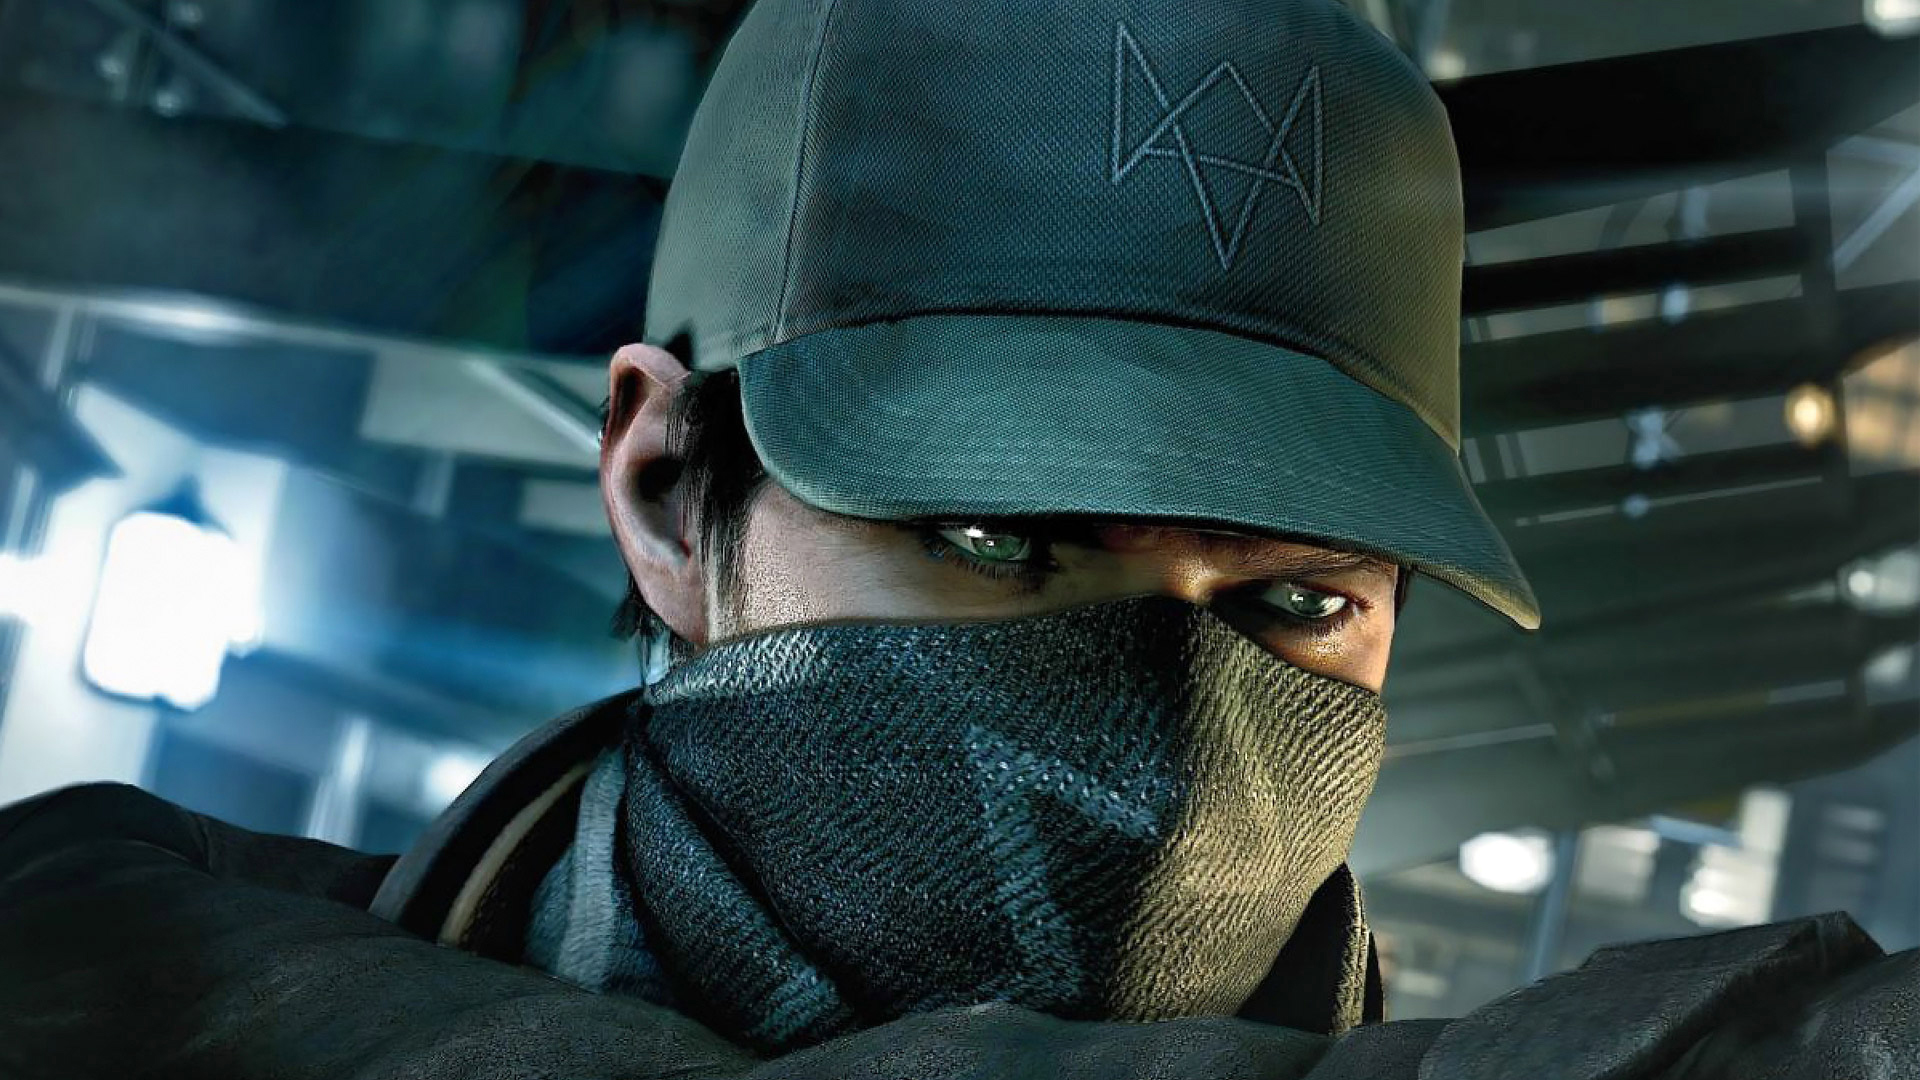 watch dogs video game aiden pearce scarf mask and cap with nexus logo 1920x1080